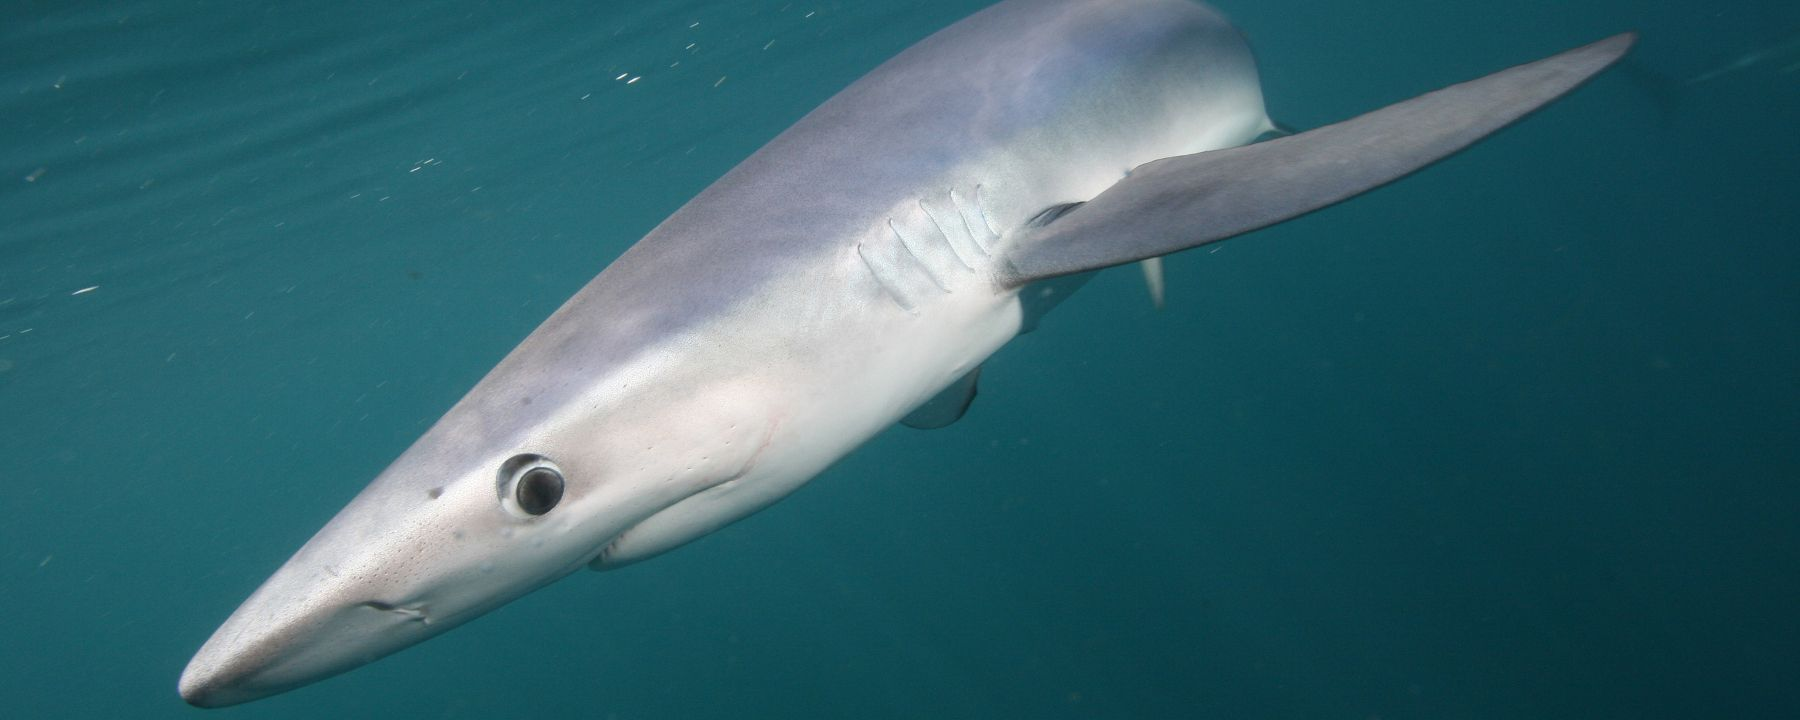 Climate Change Could Drive Sharks to Fishing Grounds: Study